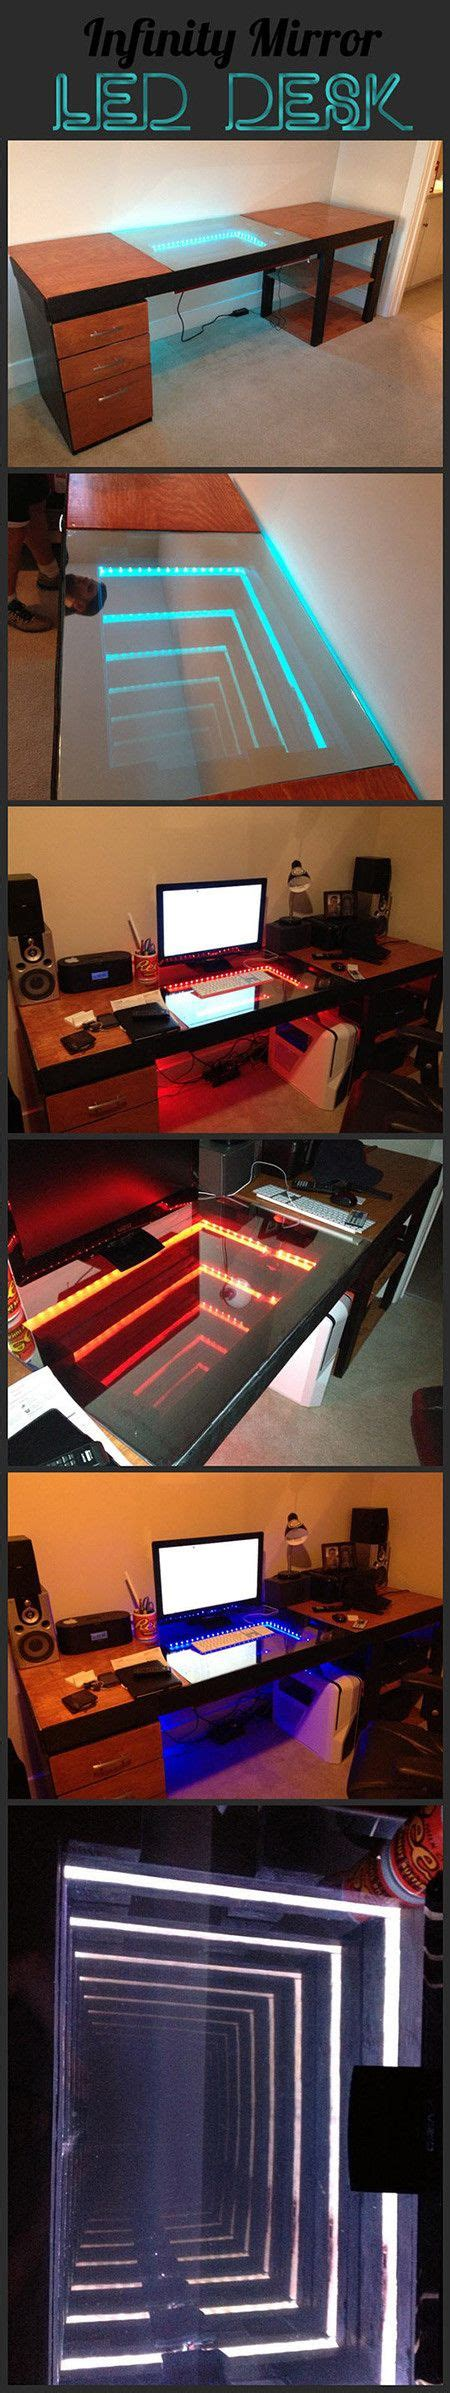 infinity mirror computer desk 130 best images about computer science on pinterest